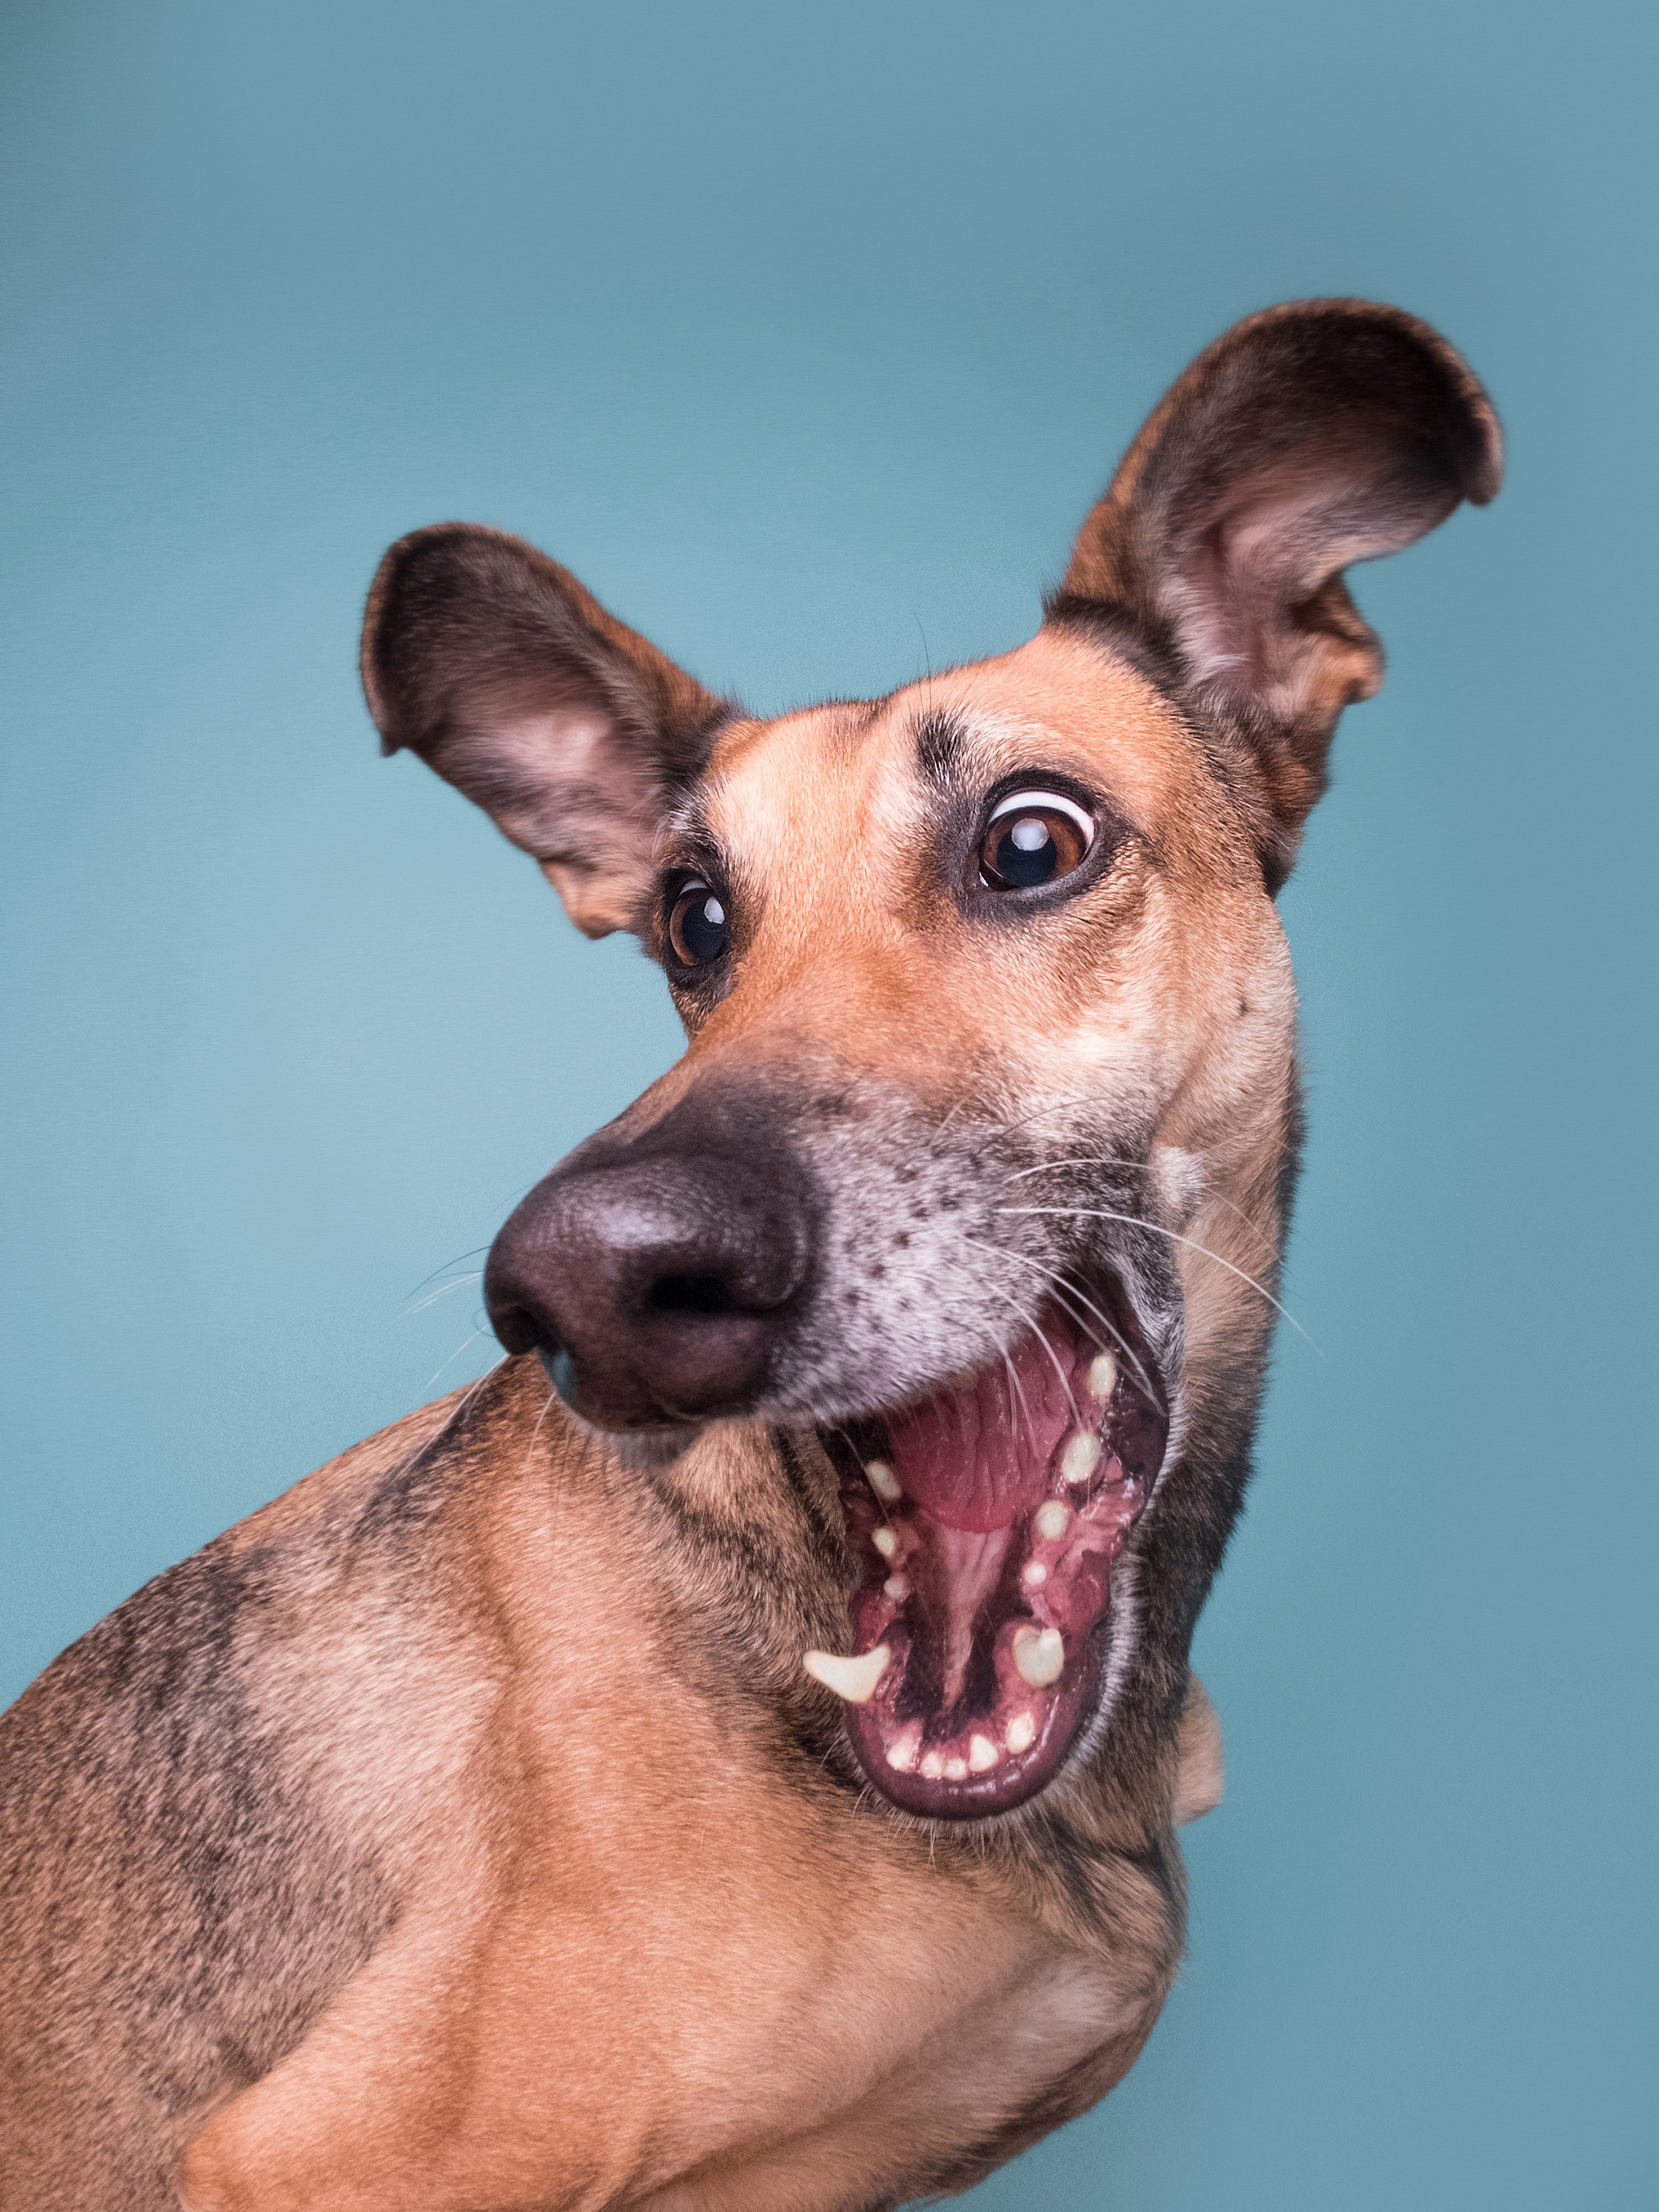 A dog with an exaggerated expression of surprise and delight